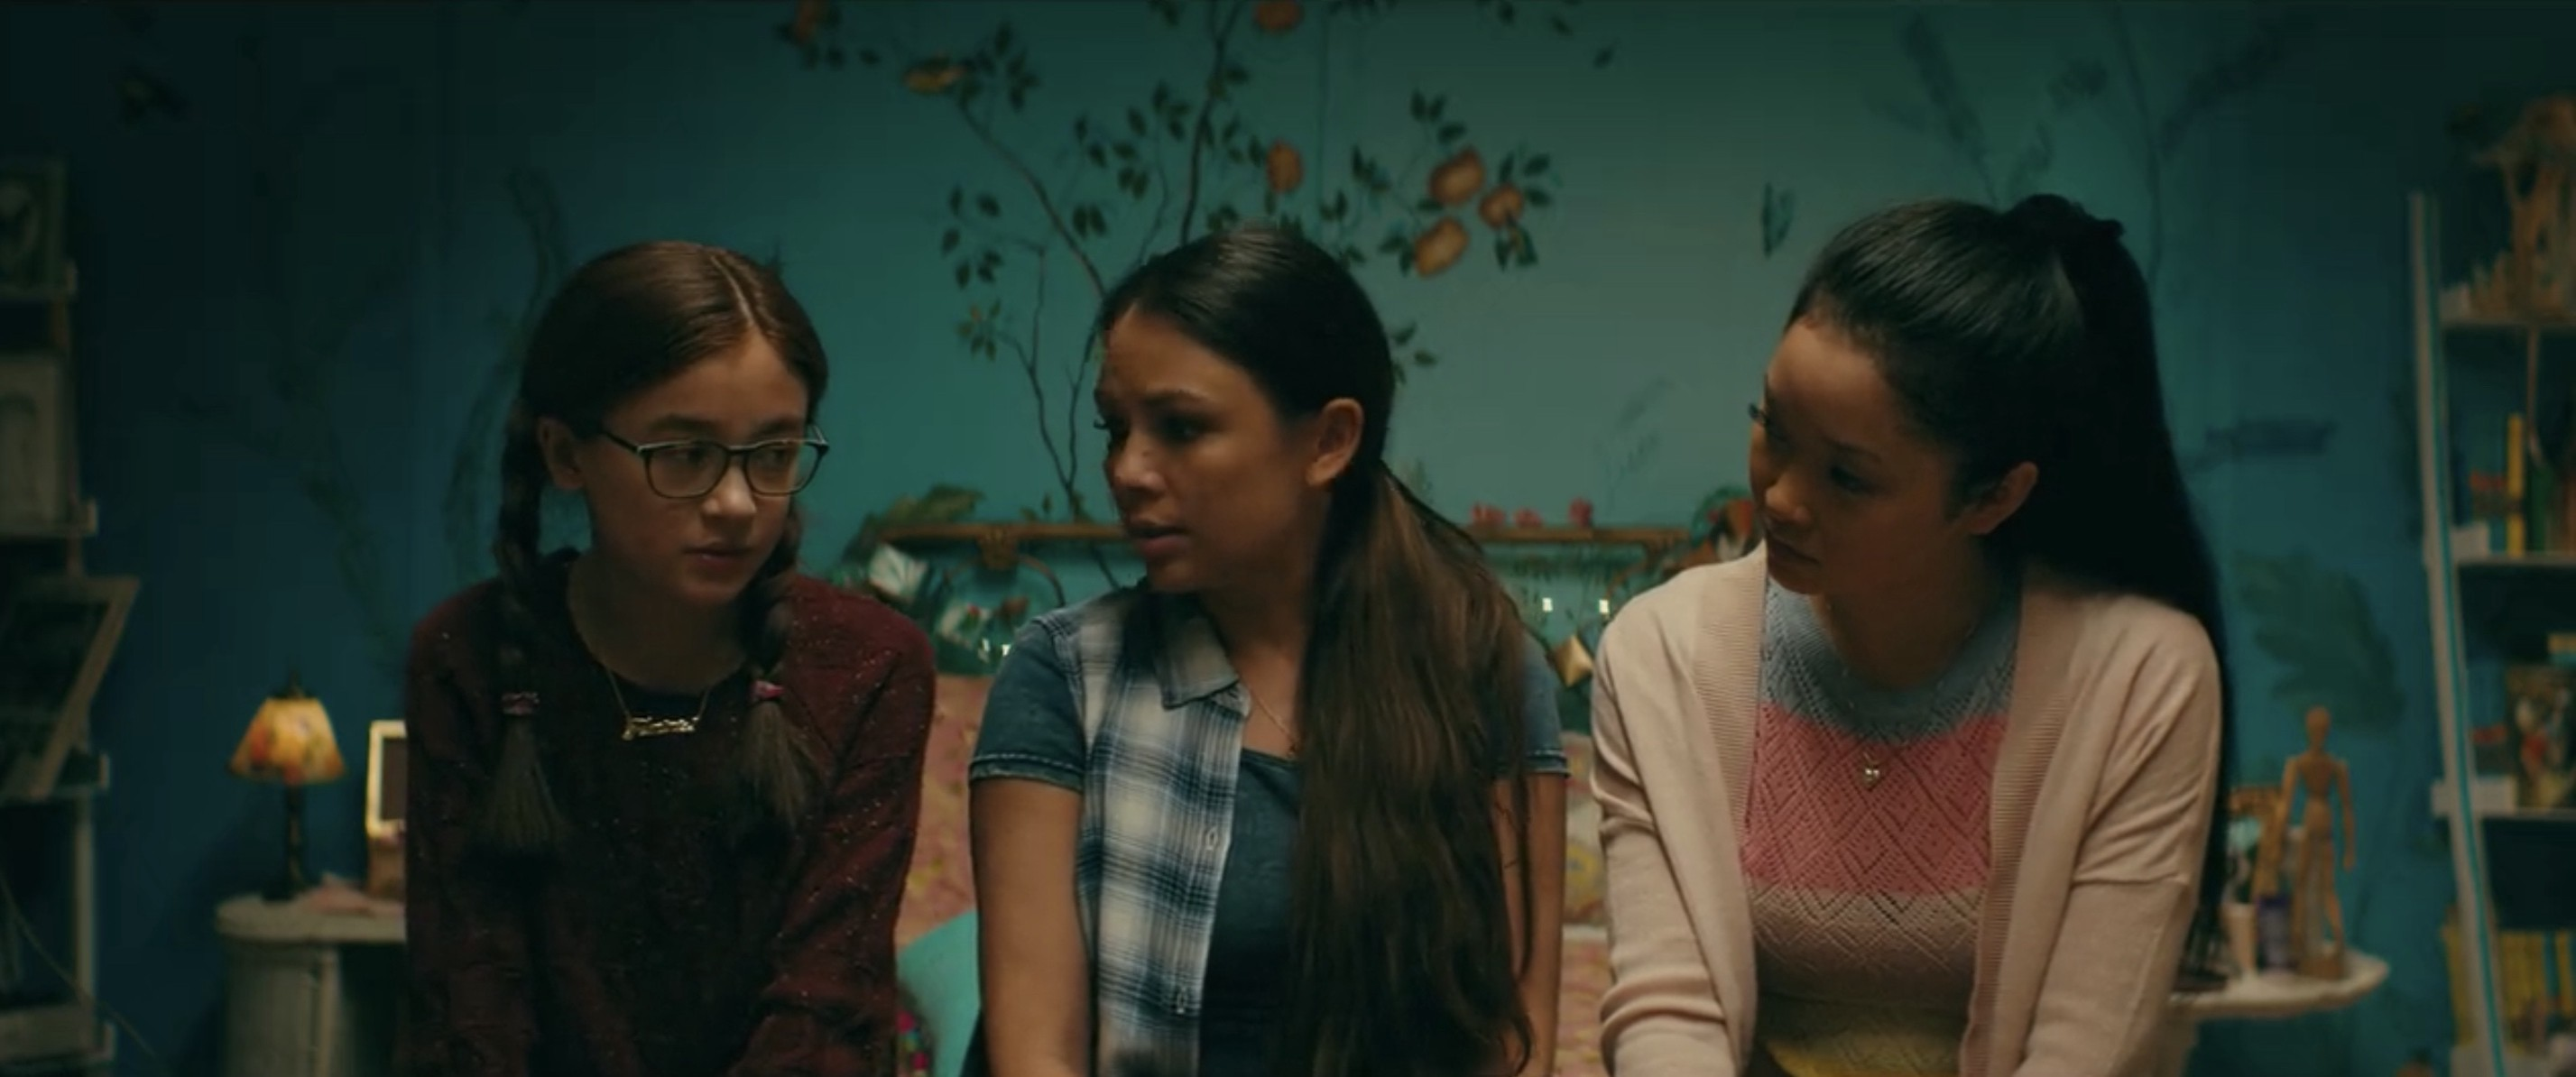 To All The Boys I've Loved Before' Has Creepy Racial Things